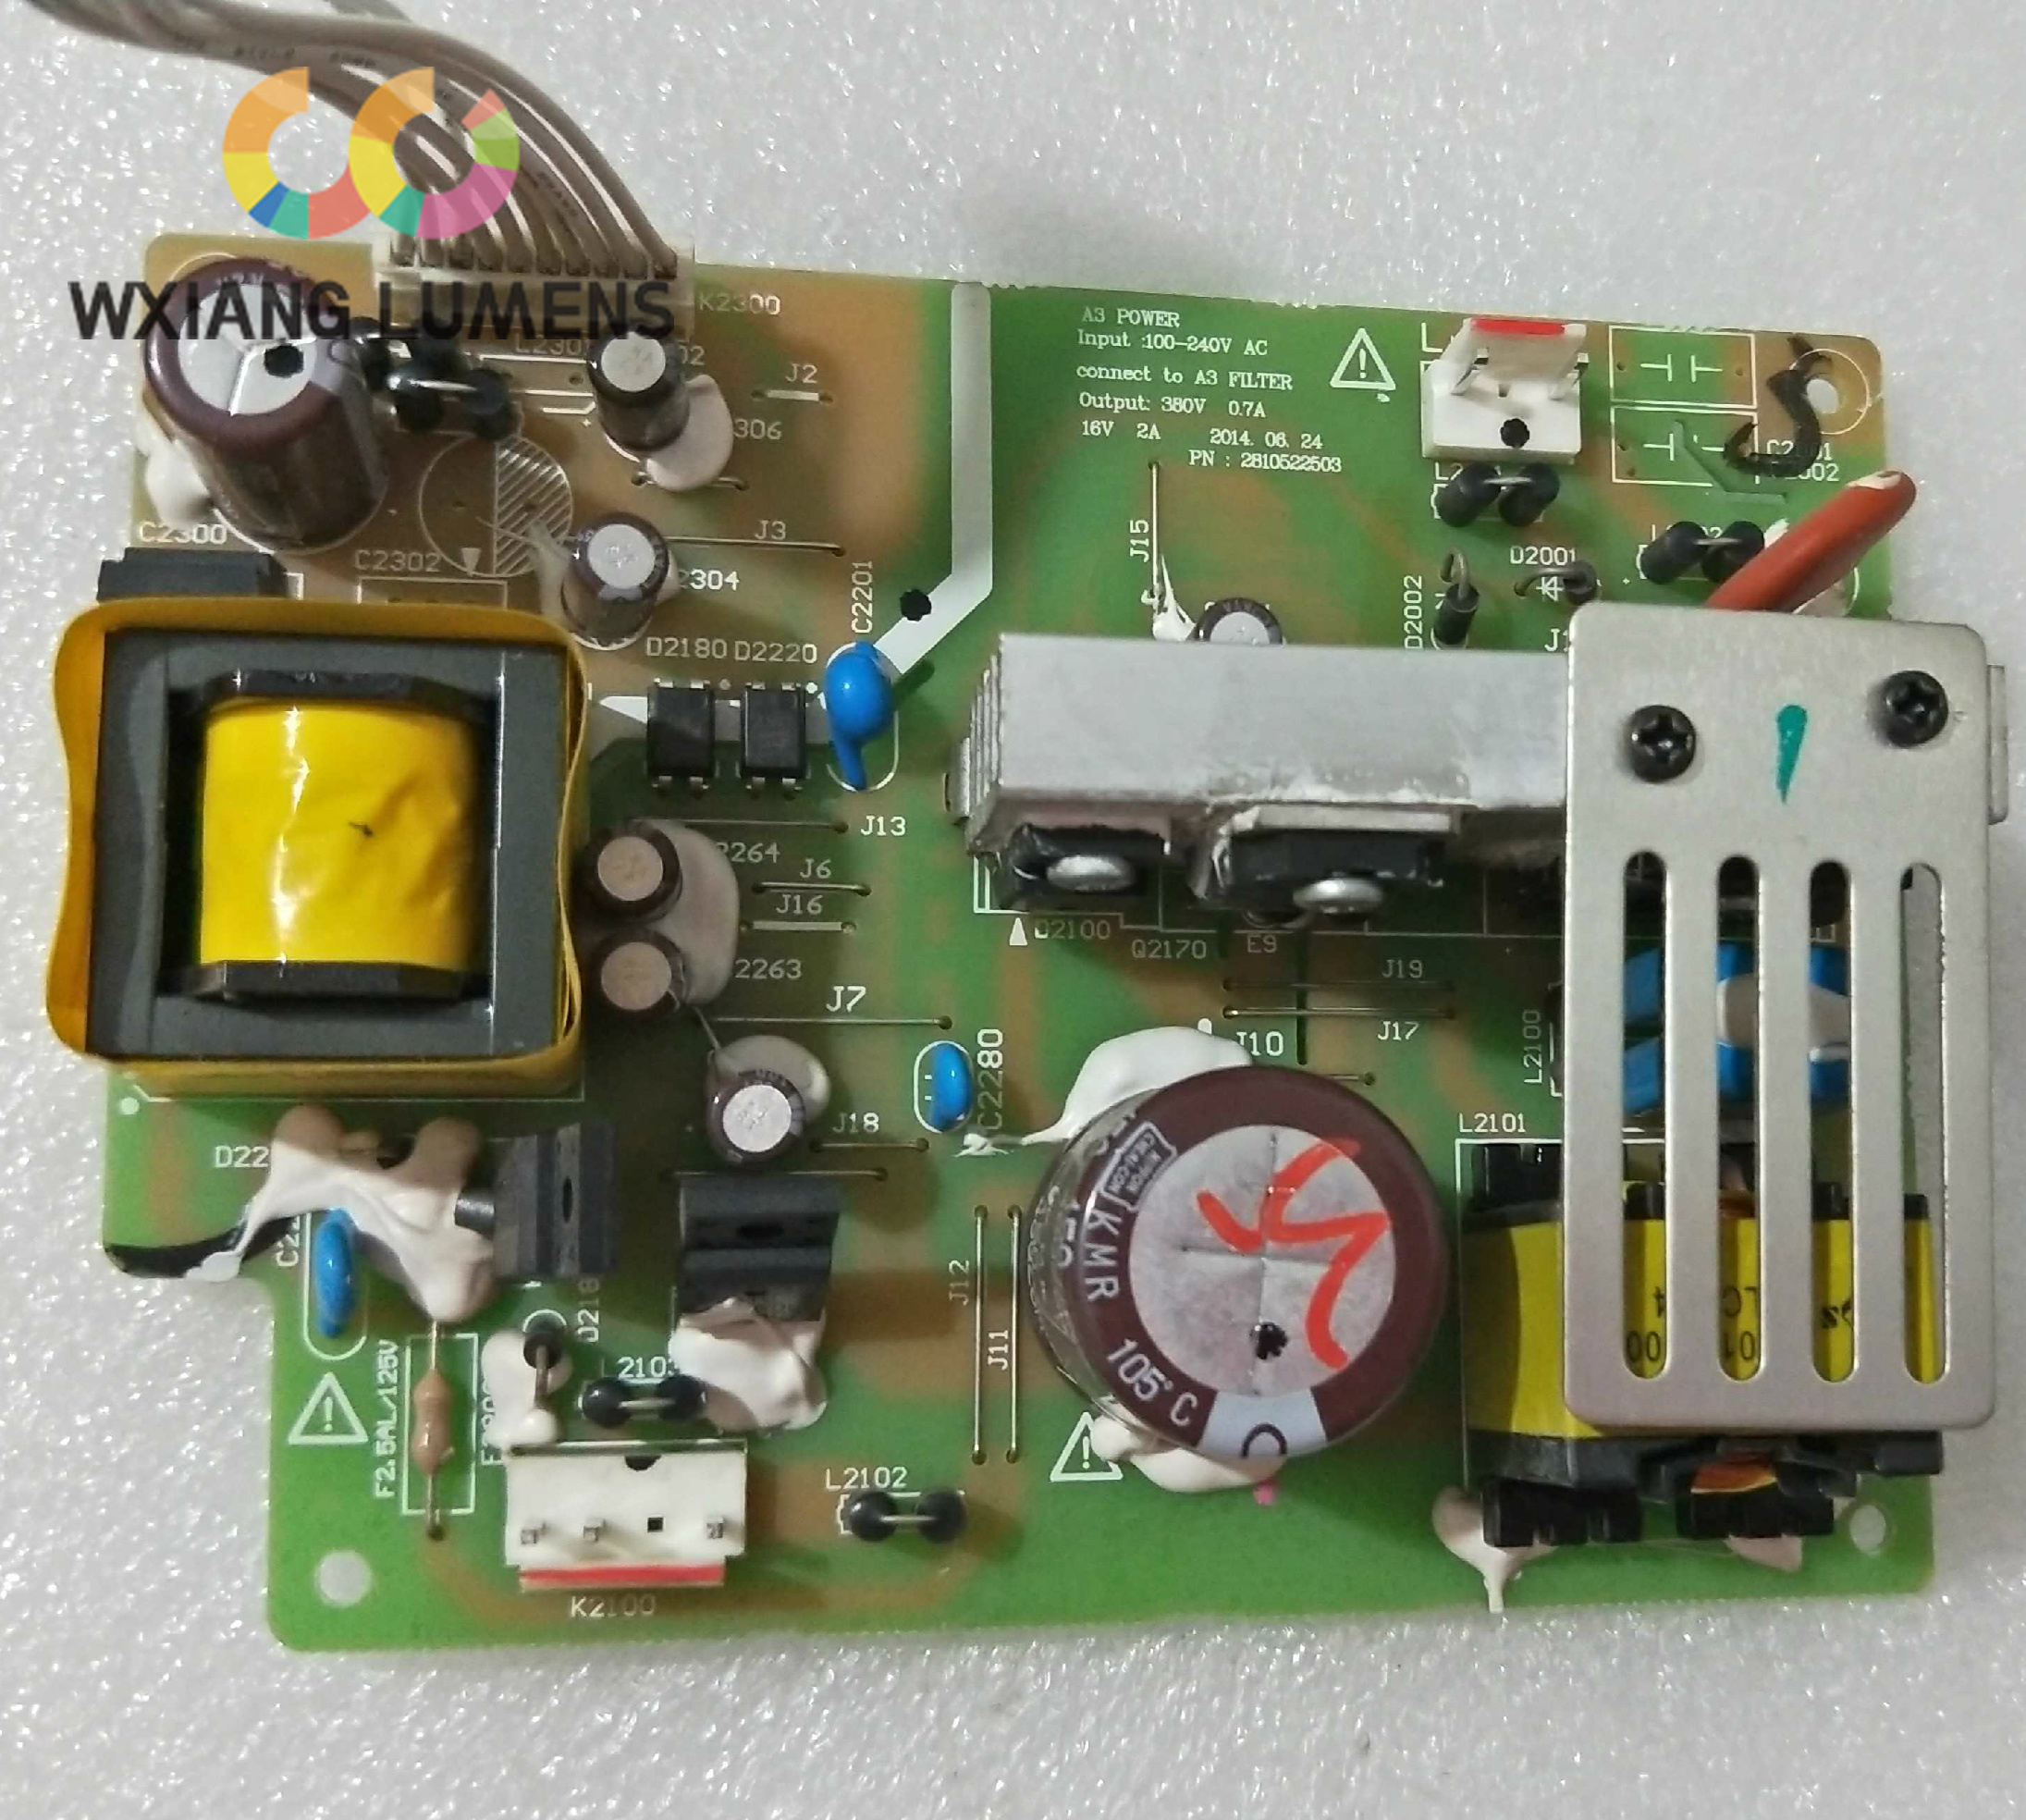 Projector Main Power Supply Board Fit for Panasonic PT-X3231STCProjector Main Power Supply Board Fit for Panasonic PT-X3231STC